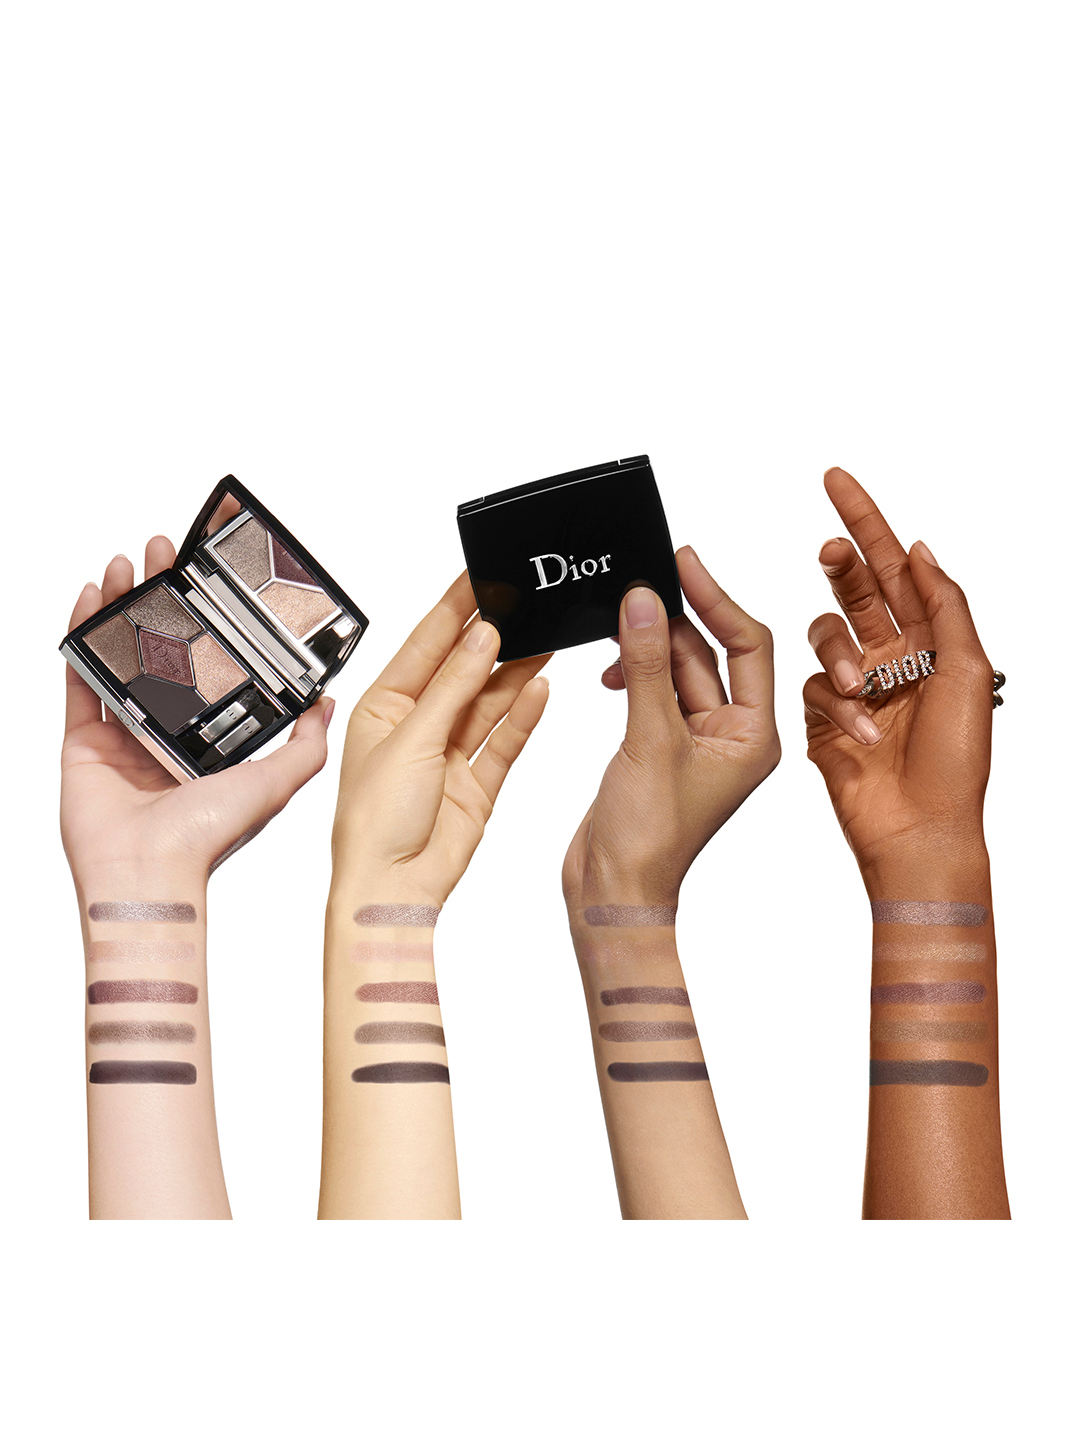 DIOR 5 Couleurs Couture Eyeshadow Palette Beauty Neutral